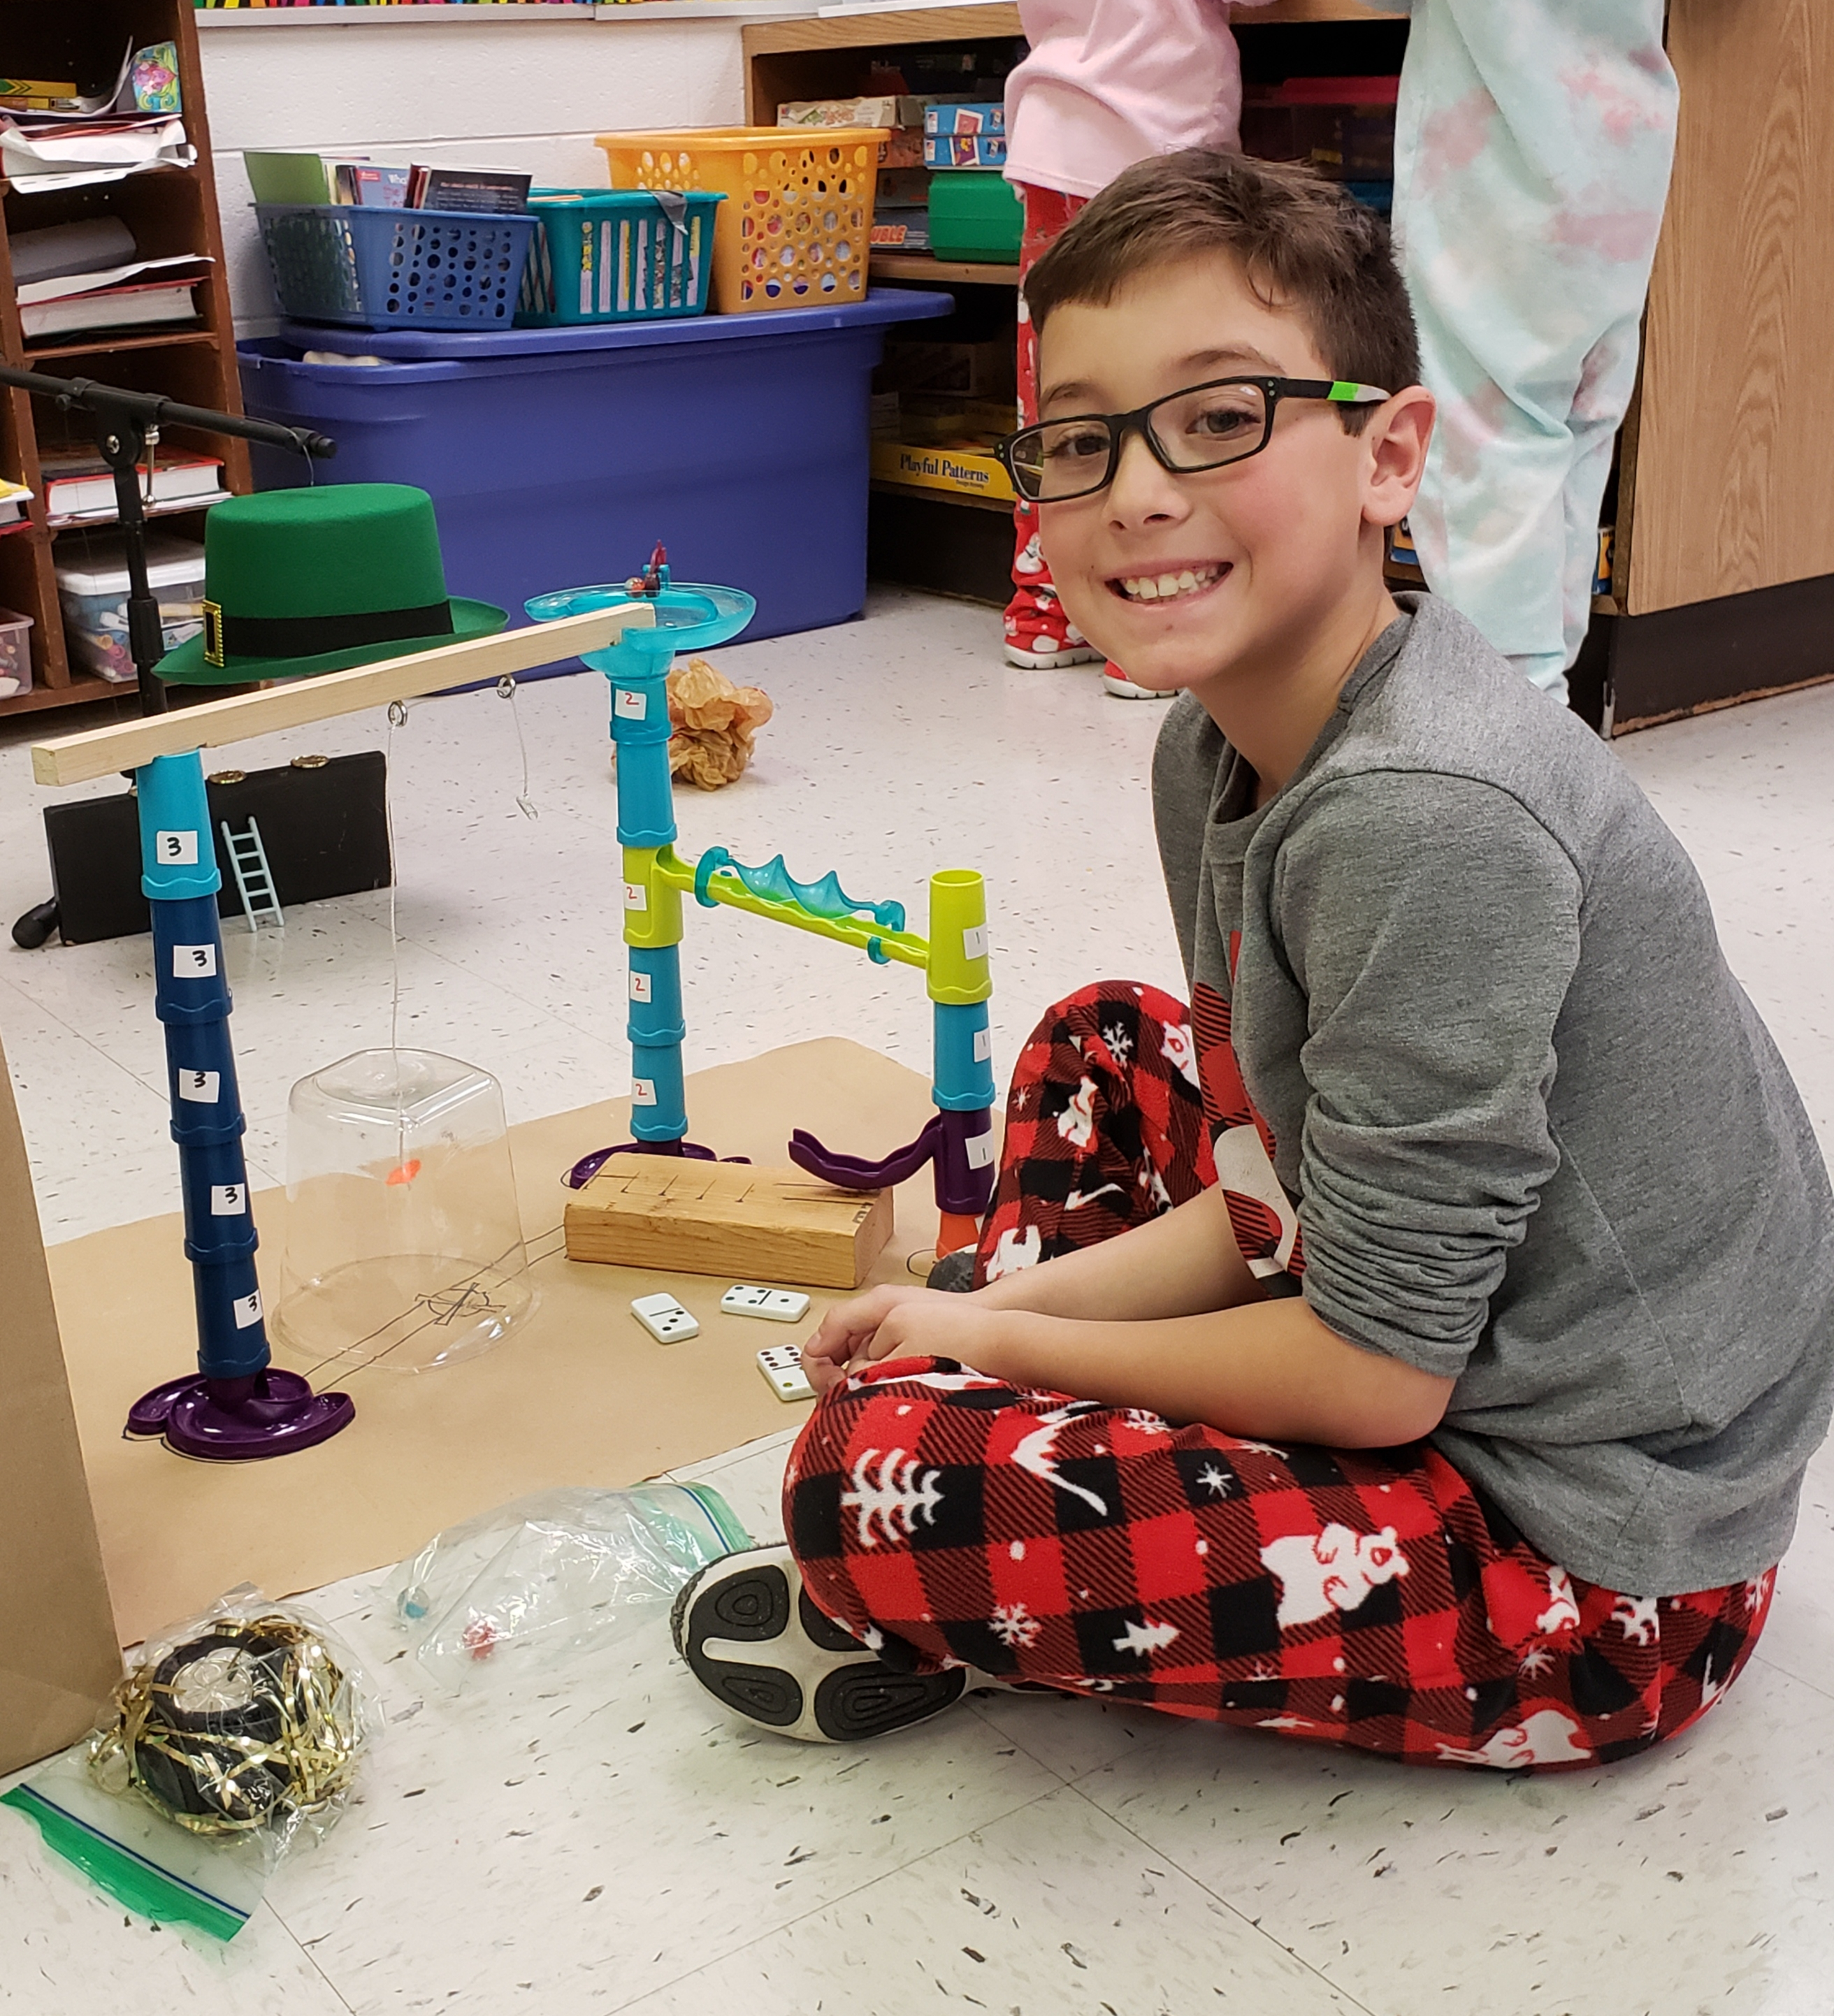 Engineers from Mrs. Pugh's 2nd grade class build and test leprechaun traps before St. Patrick's Day.